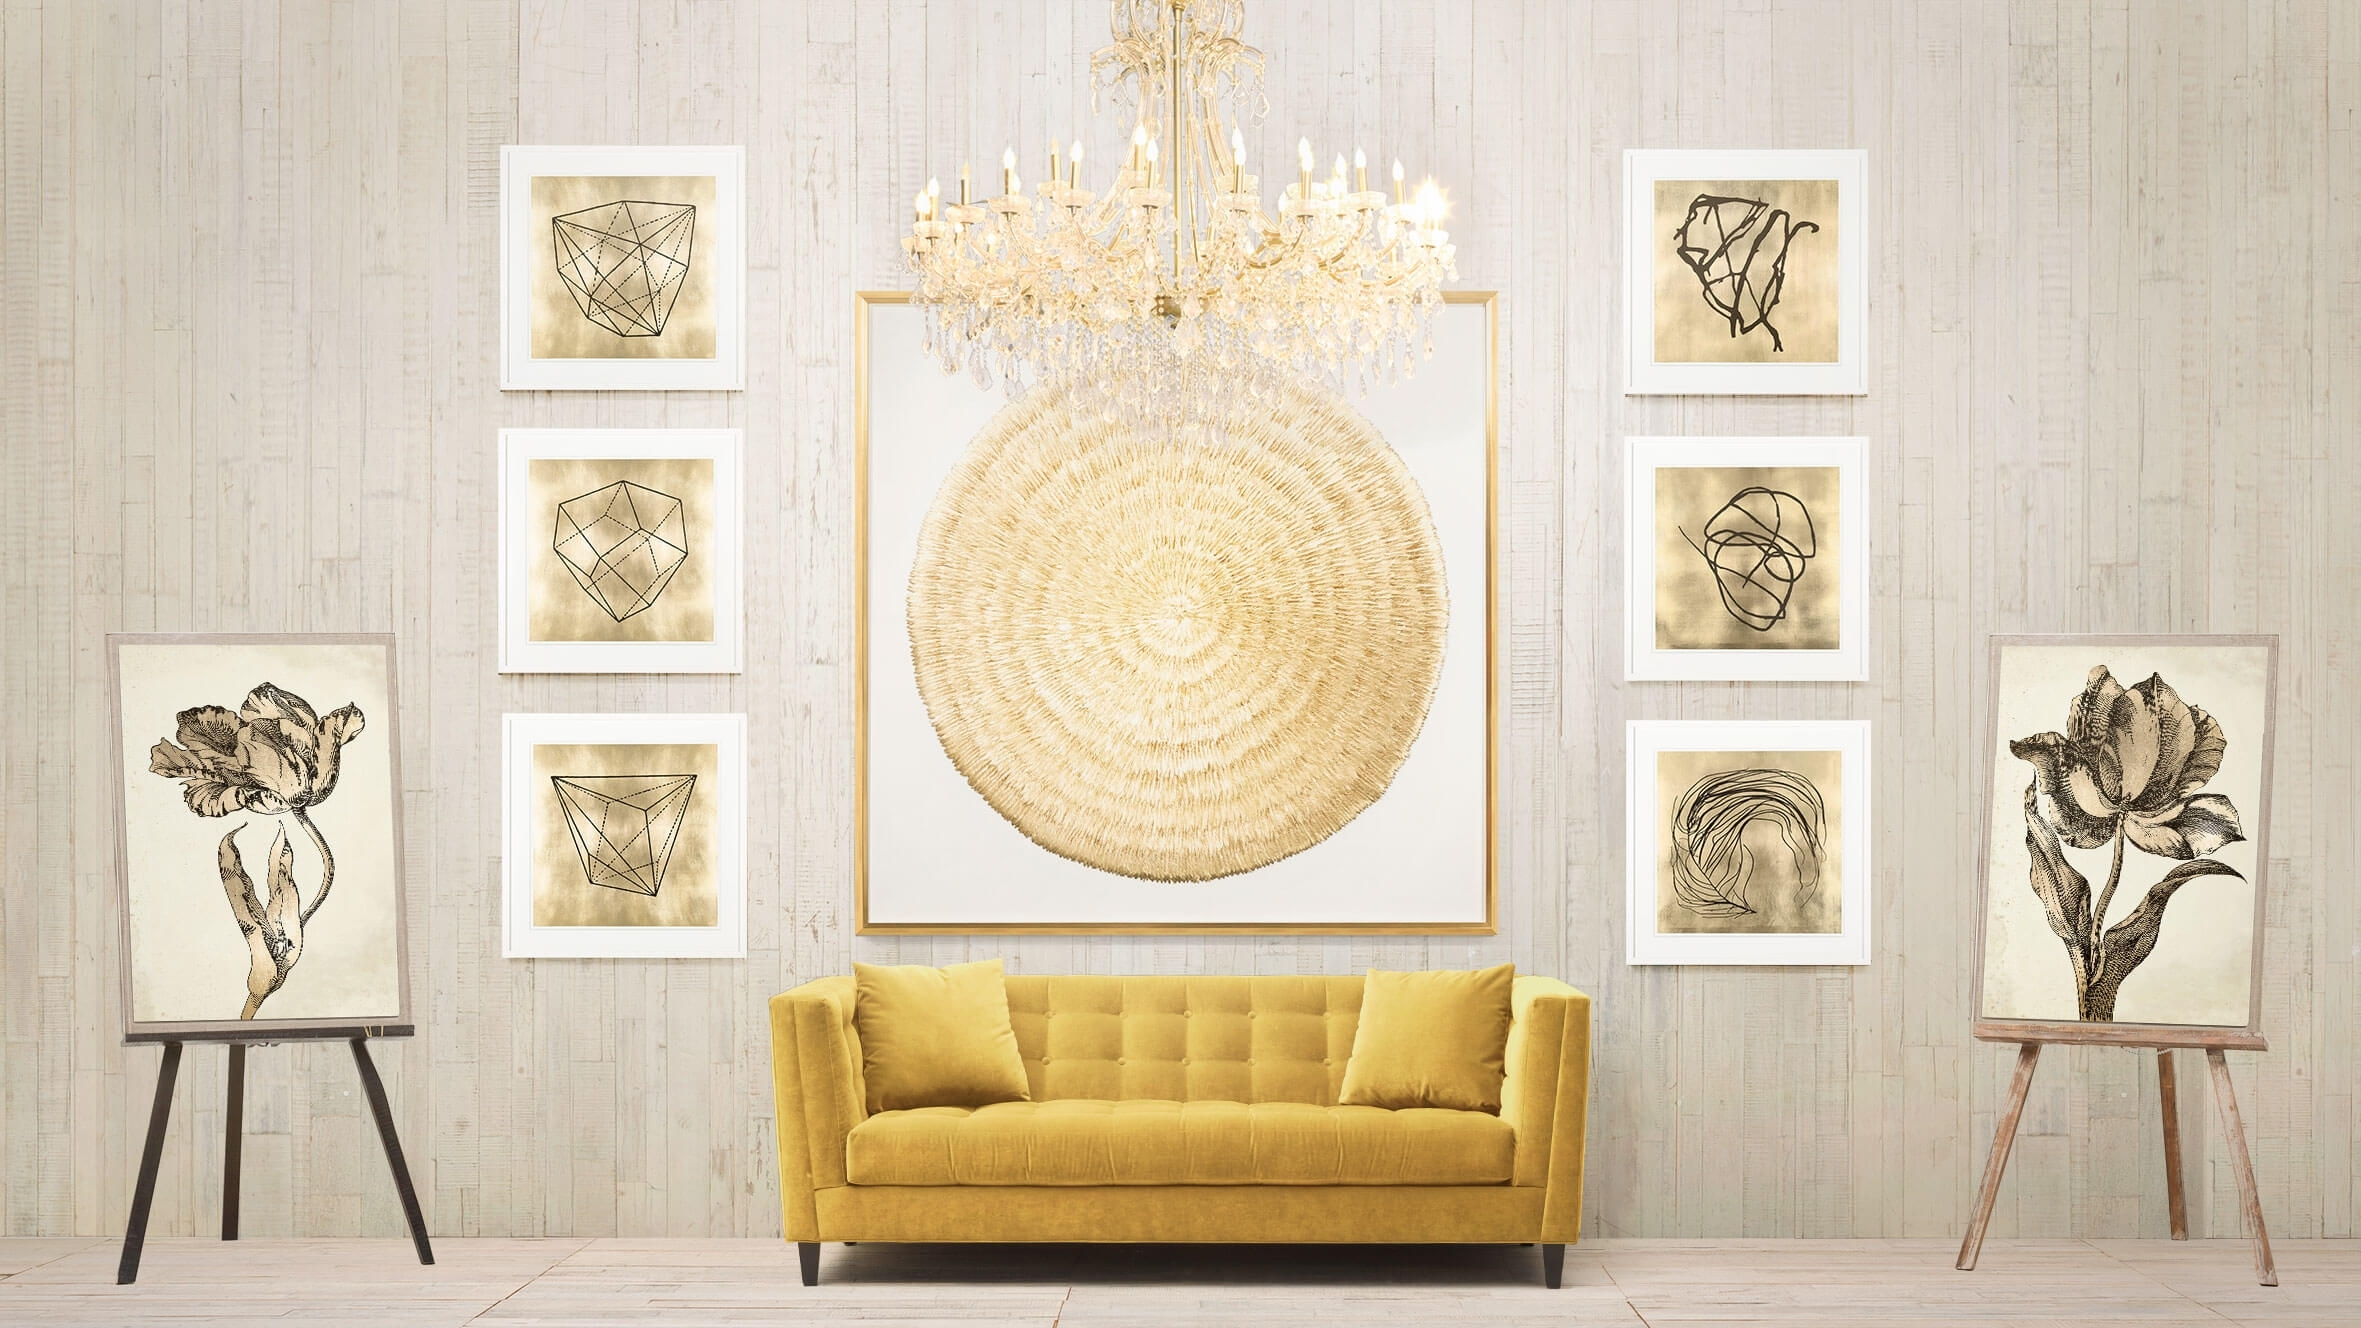 Wall Art Decor Ideas: Chandelier Wonderful Wall Art Gold, Black And Intended For Black And Gold Wall Art (Photo 20 of 20)